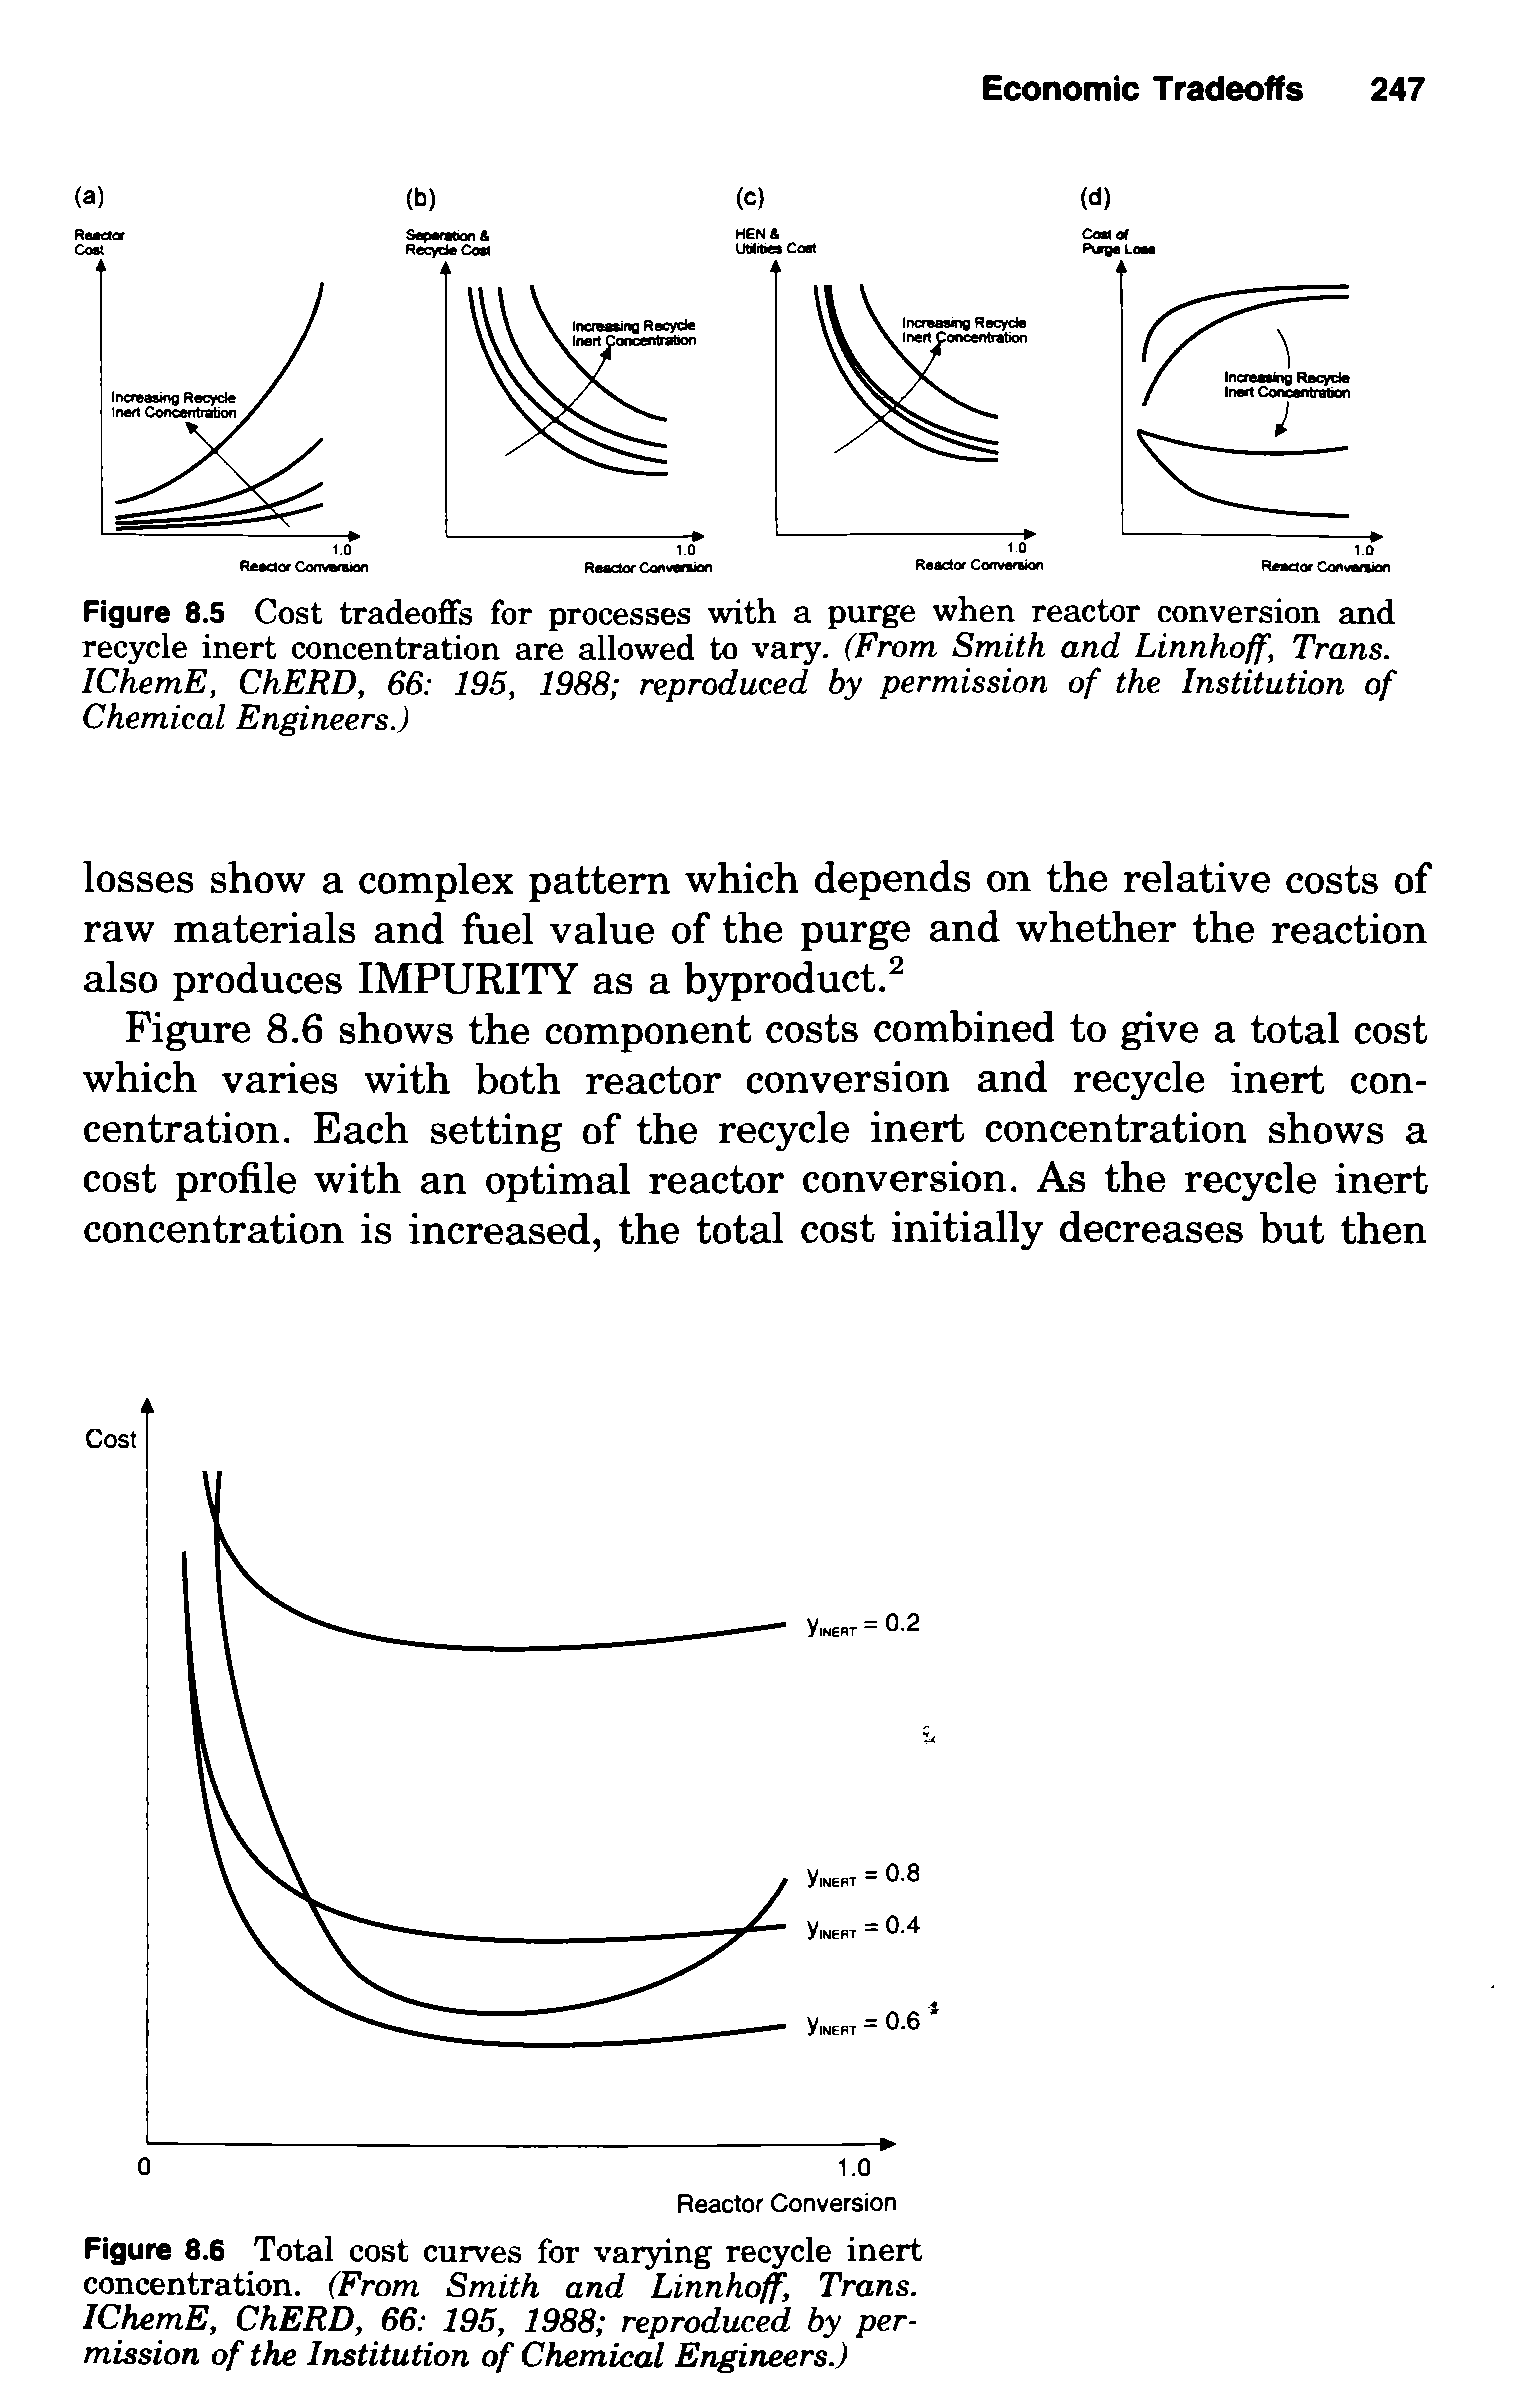 Figure 8.5 Cost tradeoffs for processes with a purge when reactor conversion and recycle inert concentration are allowed to vary. (From Smith and Linnhoff, Trans. IChemE, ChERD, 66 195, 1988 reproduced by permission of the Institution of Chemical Engineers.)